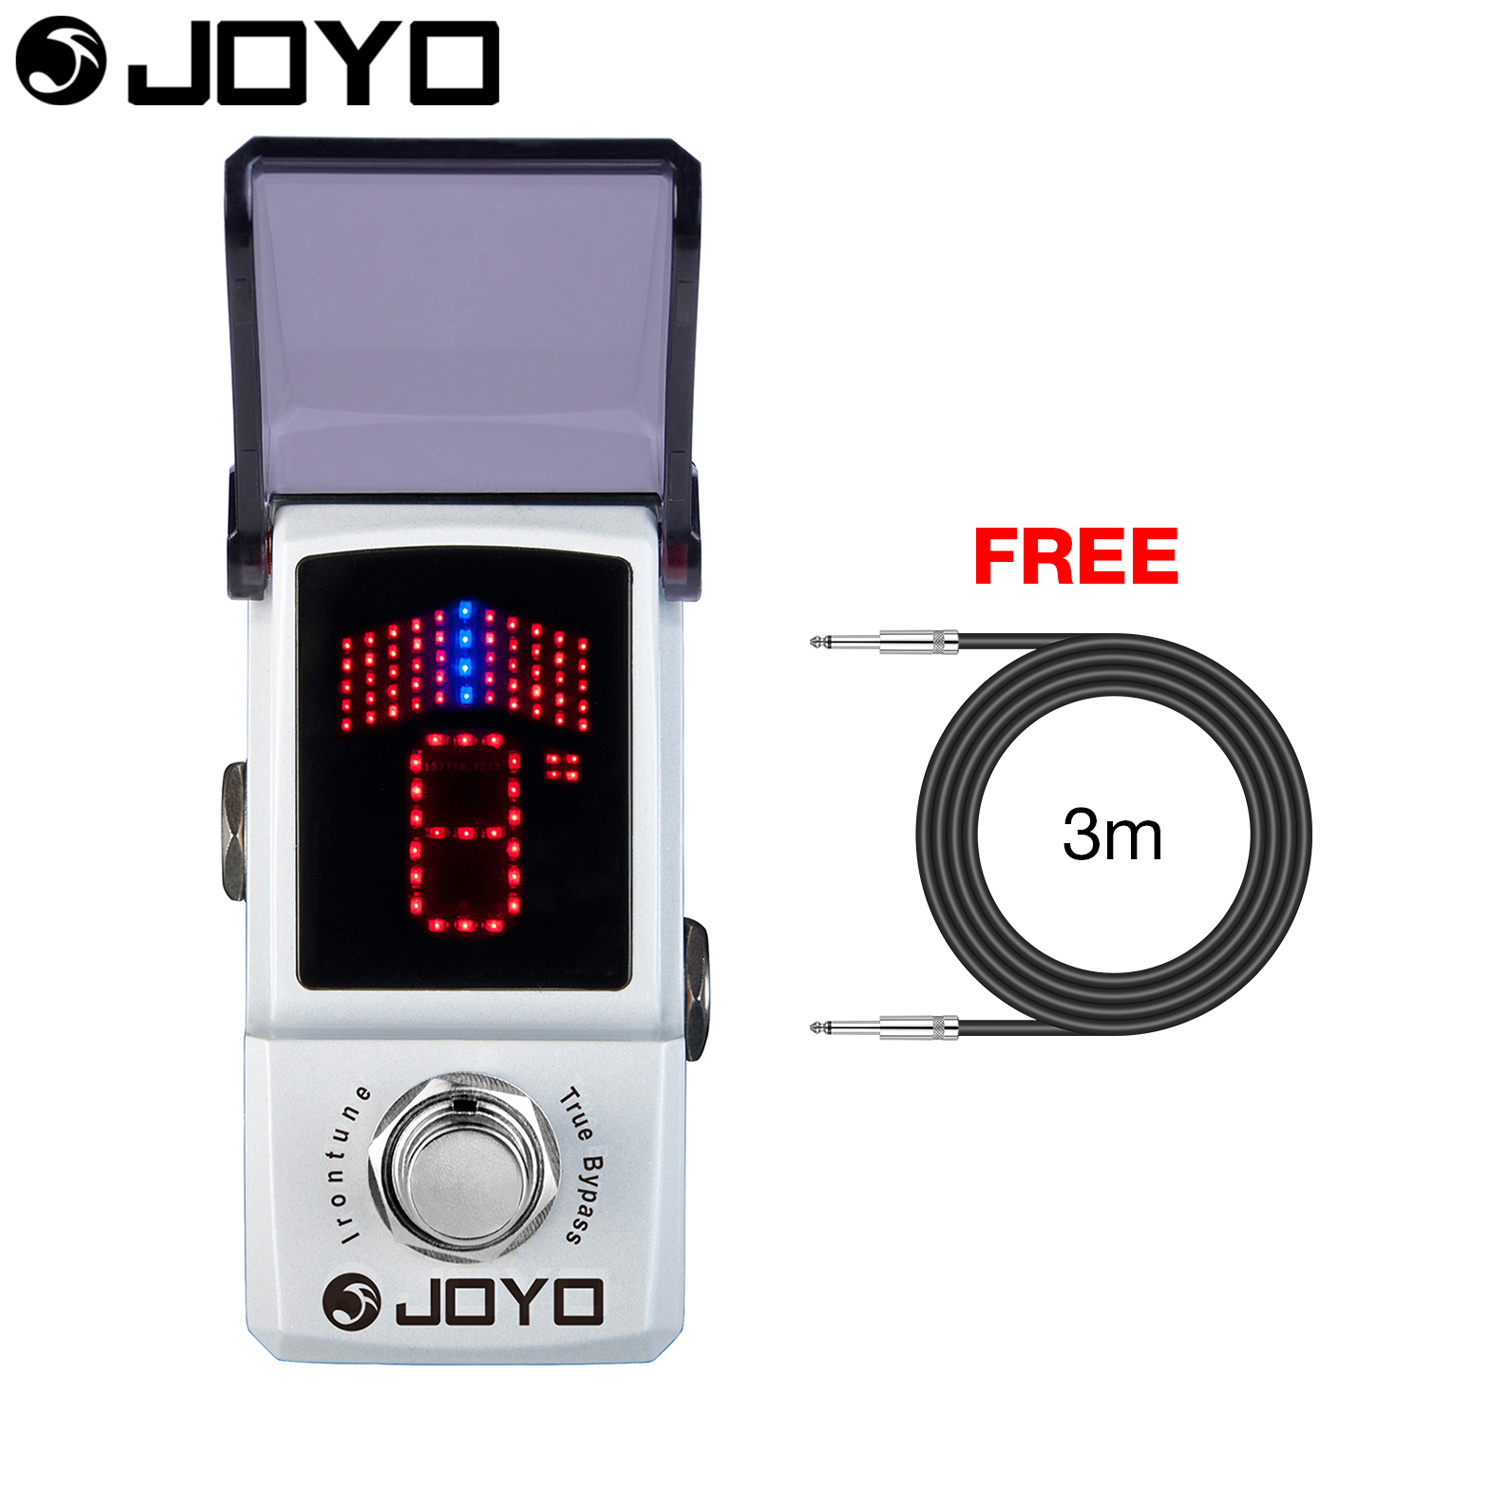 Joyo Irontune Tuner Guitar Effect Pedal True Bypass JF 326 with Free 3m Cable aroma adr 3 dumbler amp simulator guitar effect pedal mini single pedals with true bypass aluminium alloy guitar accessories